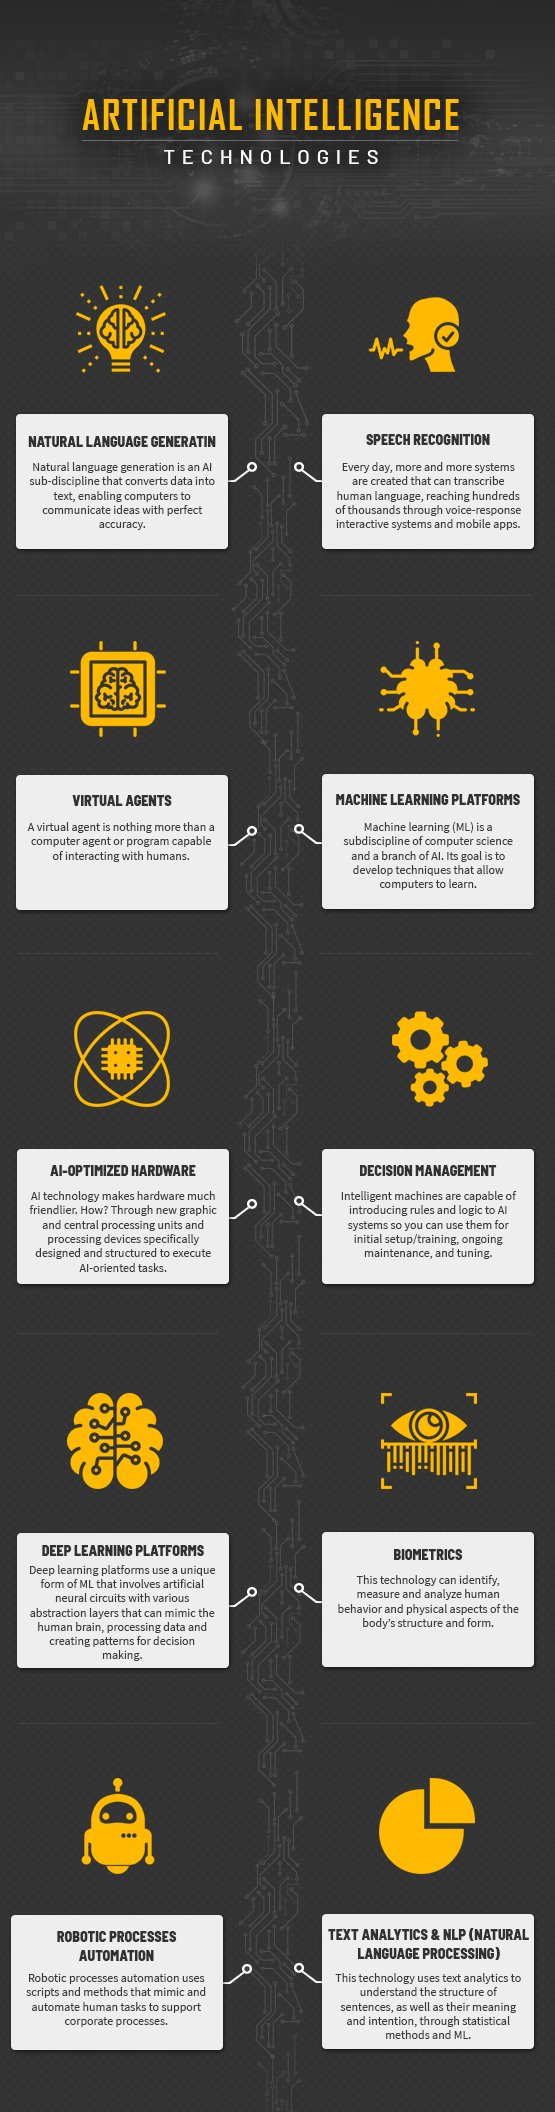 Adopting Artificial Intelligence in Your Business [Infographic]